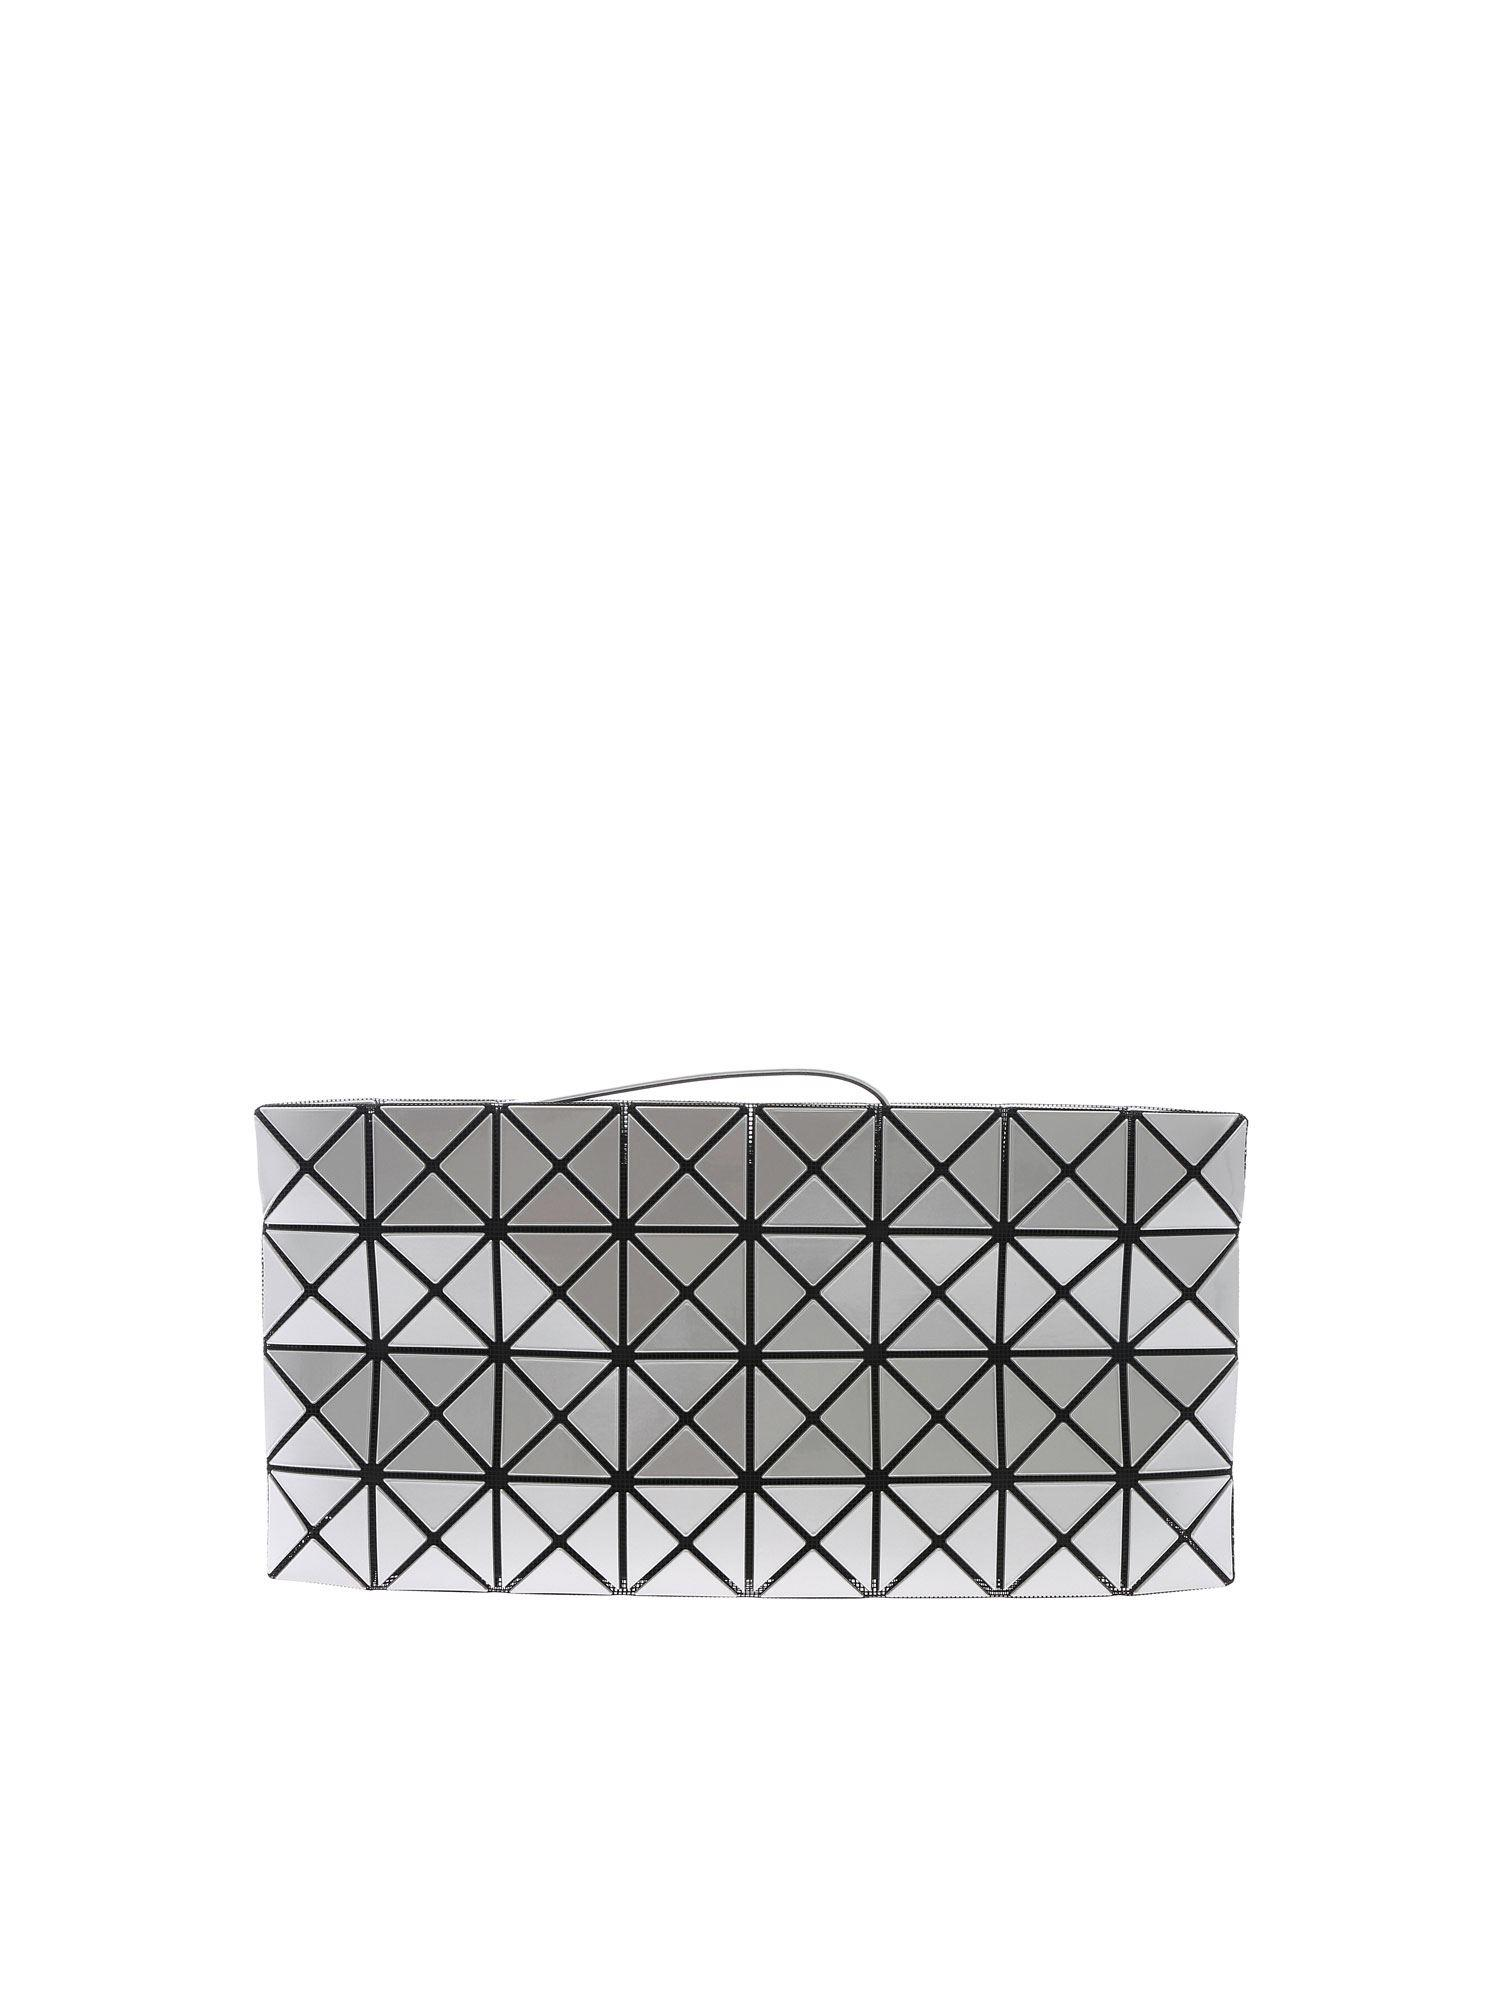 Lyst - Bao Bao Issey Miyake Prism Silver Triangle Bag in Metallic 8d7907680436a